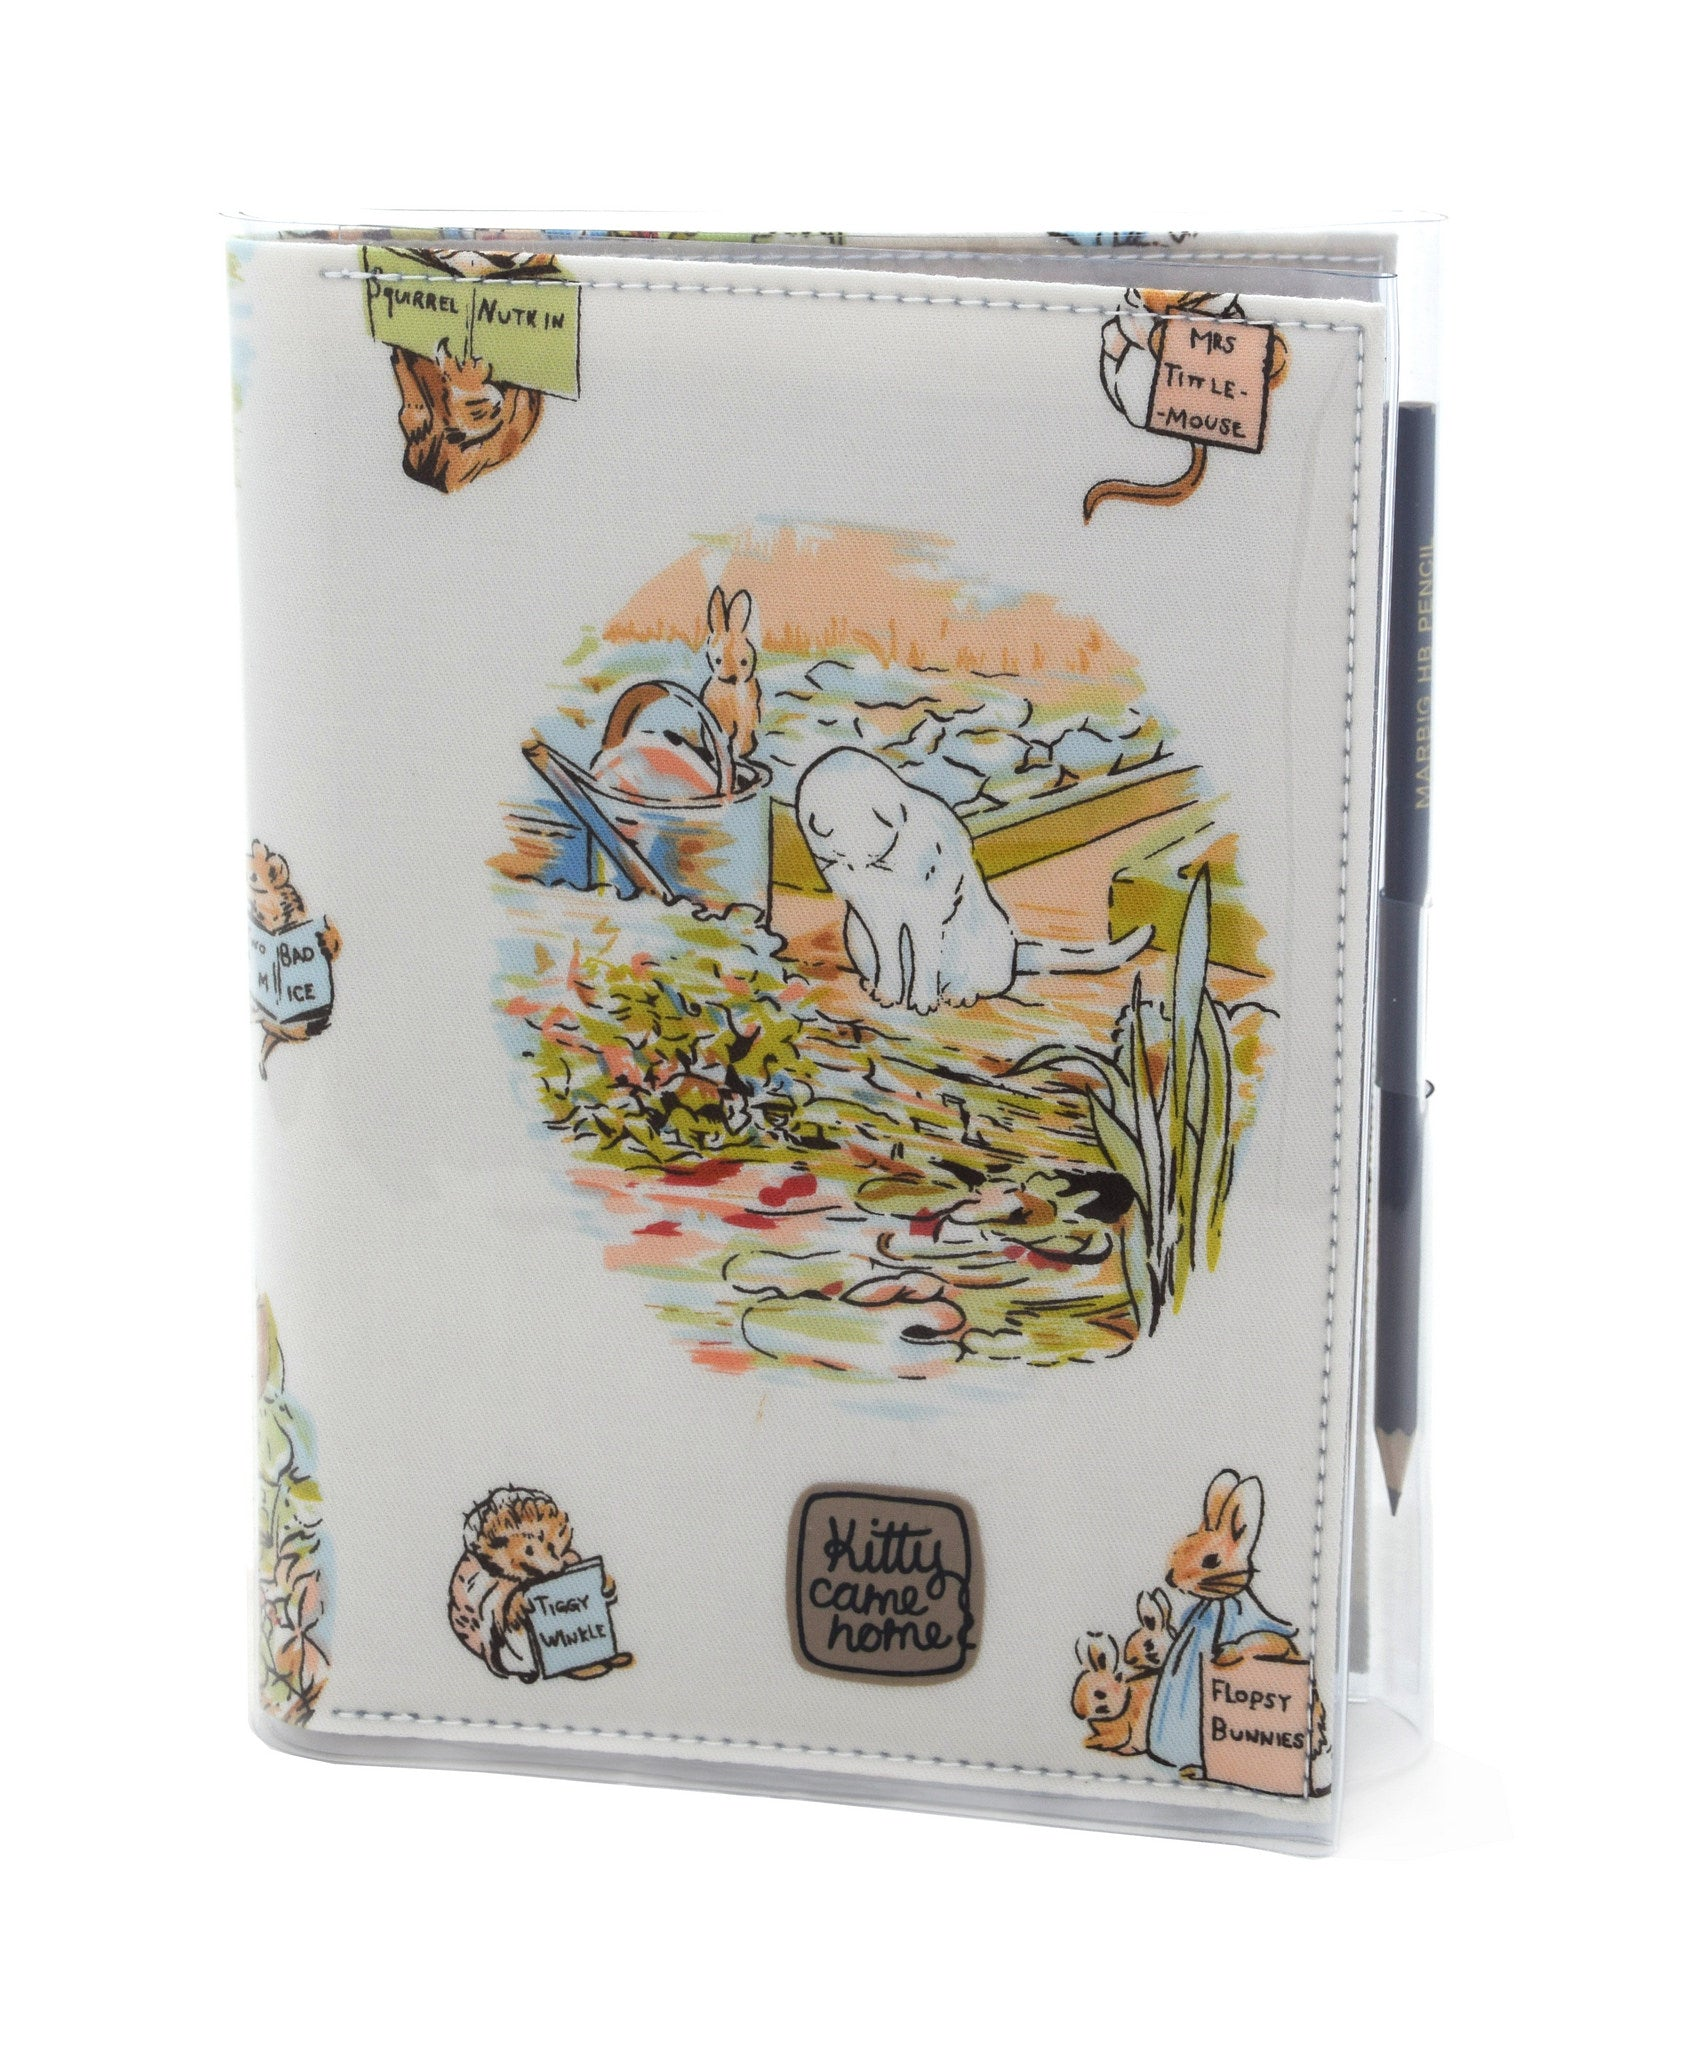 A5 Journal - Mr Mcgregor's cat - Peter Rabbit vintage fabric